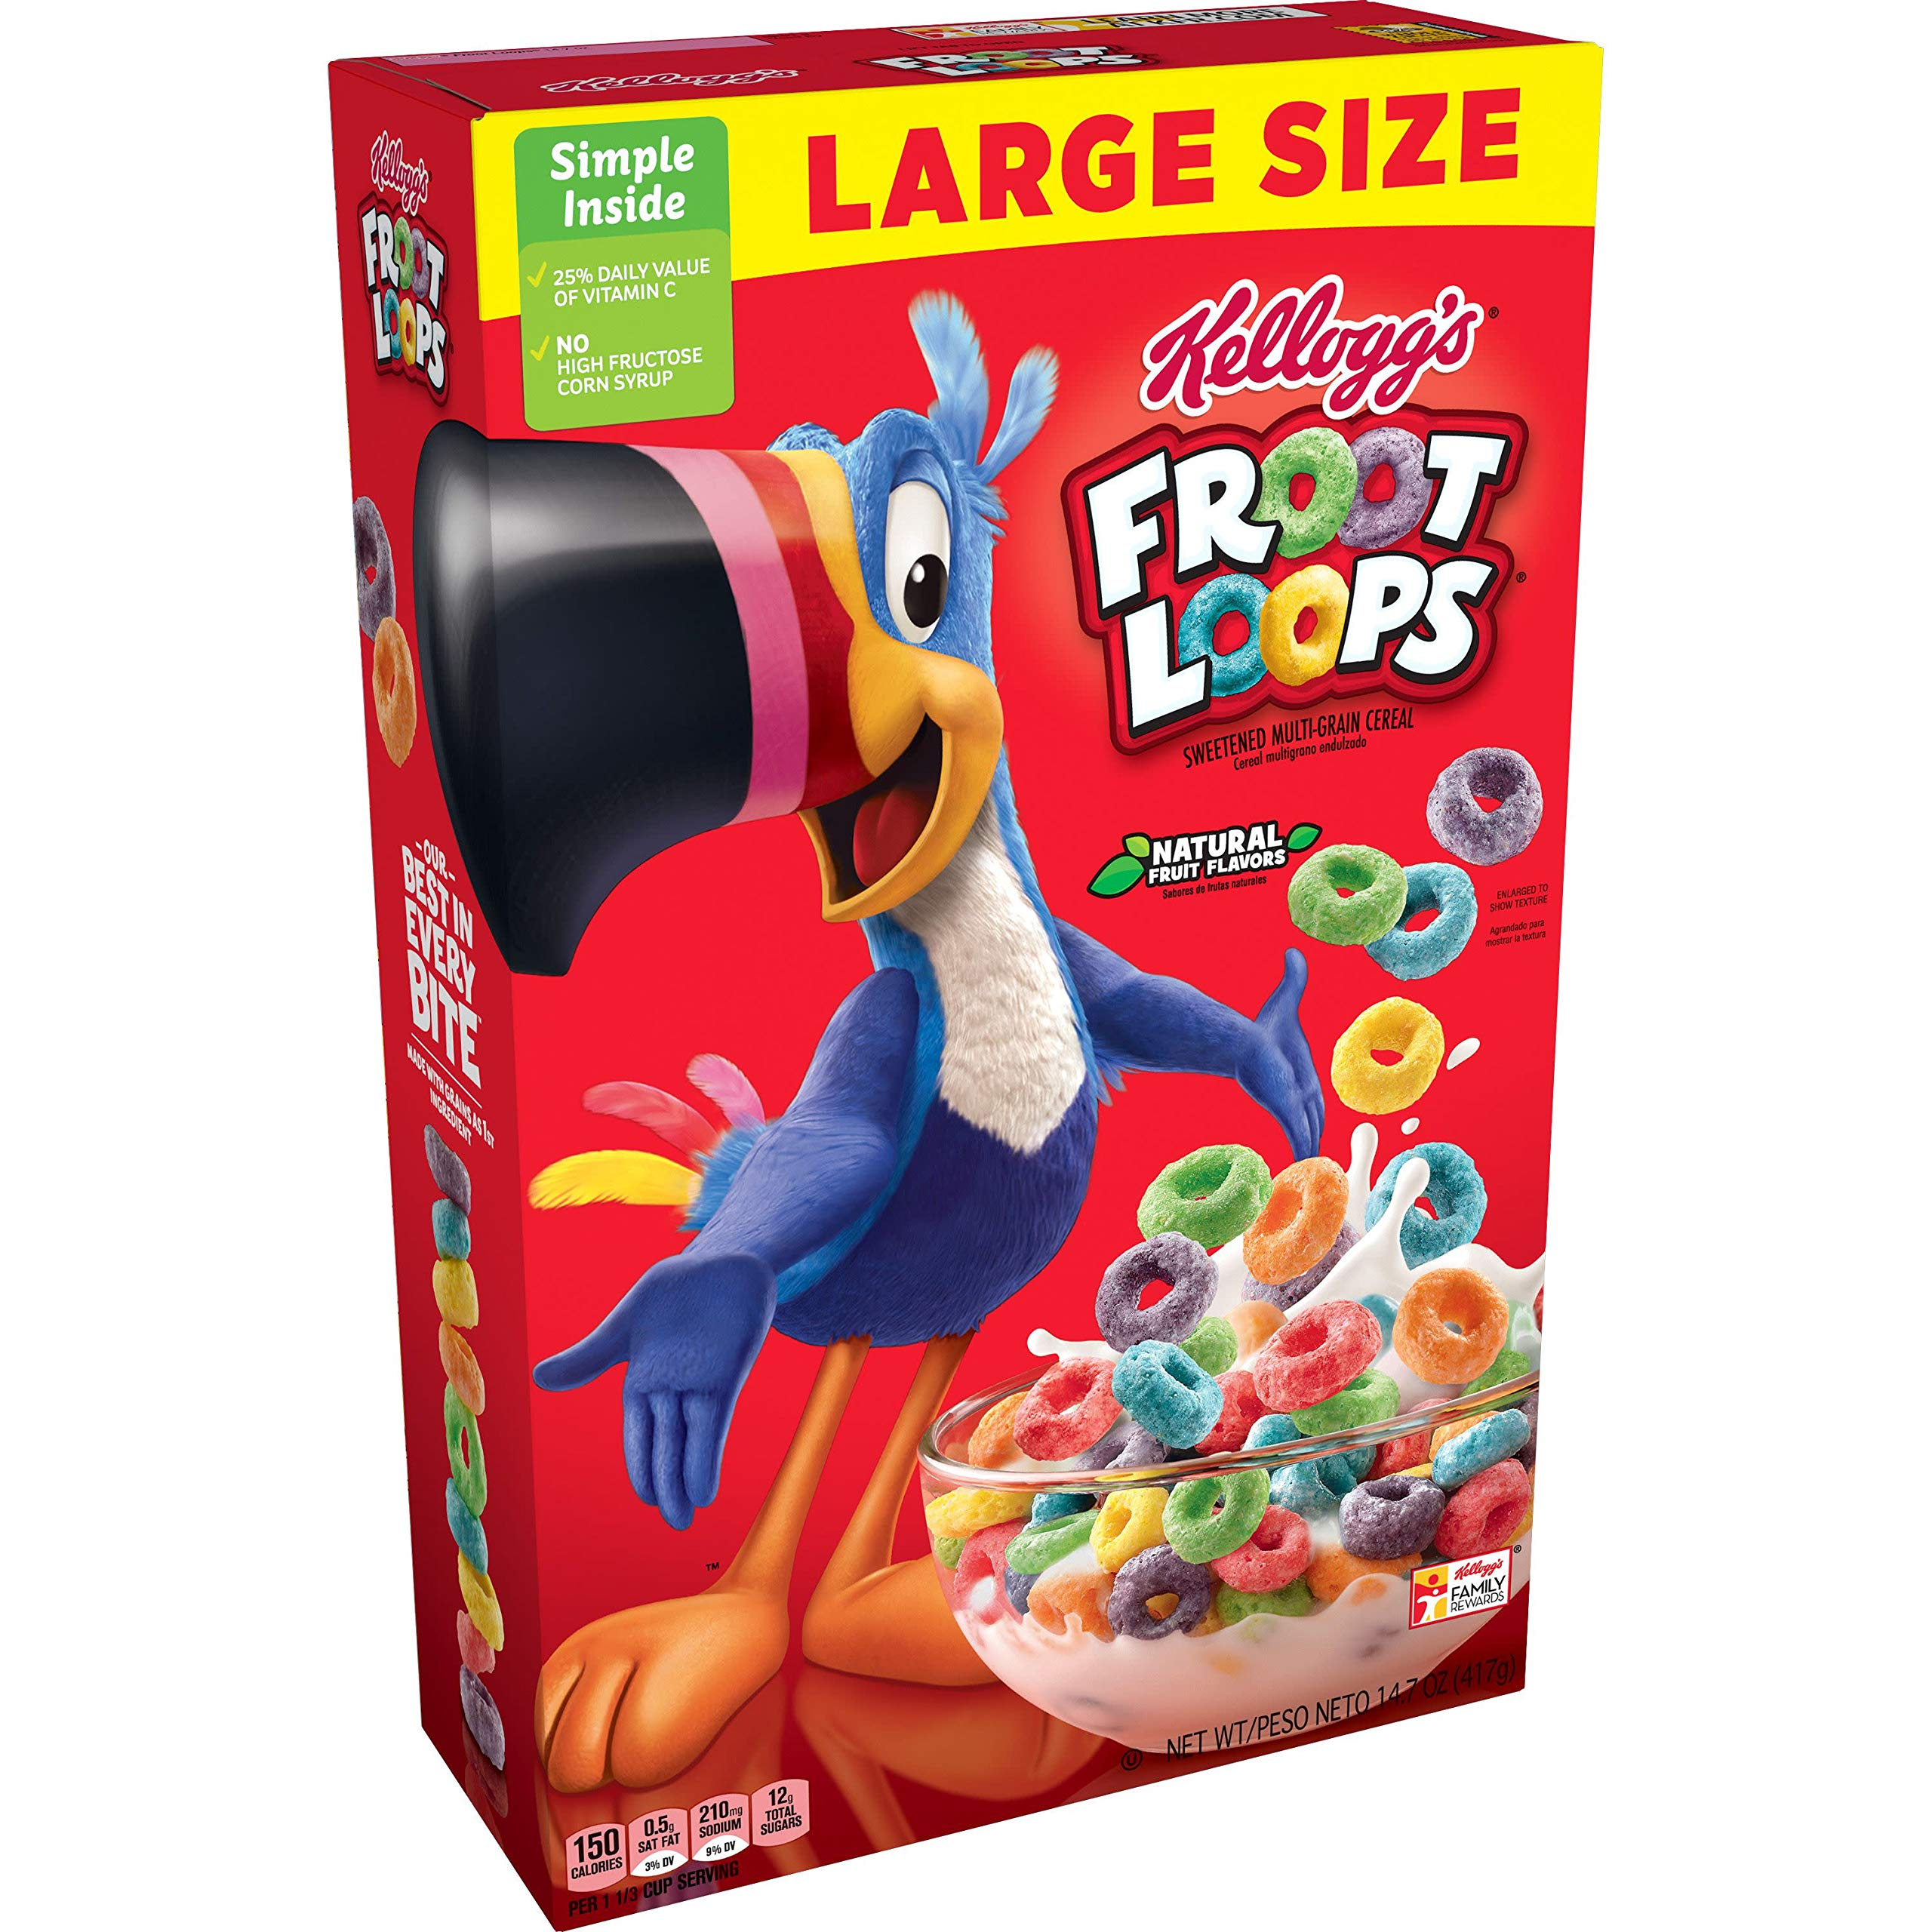 Kellogg's Froot Loops, Breakfast Cereal, Original, Excellent Source of Vitamin C, Large Size, 14.7oz Box